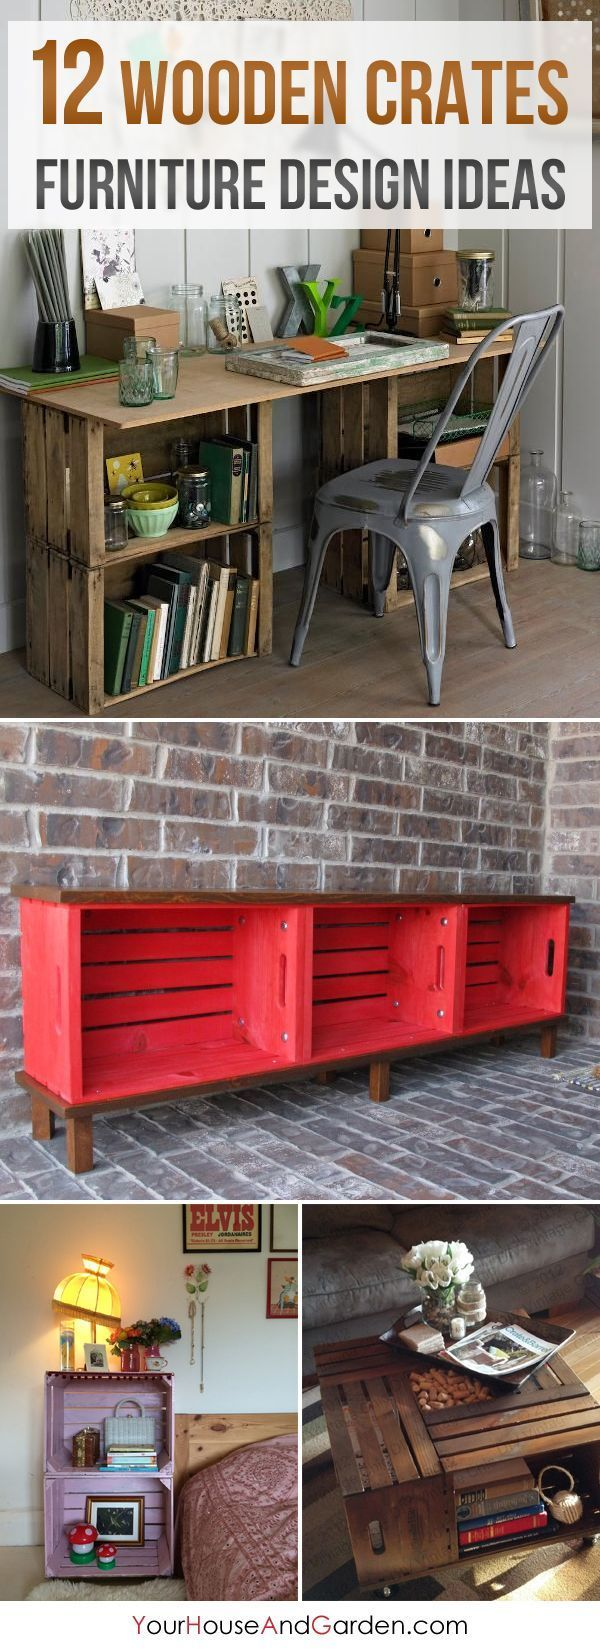 How to make a sofa table from cable wood reel - 12 Amazing Wooden Crates Furniture Design Ideas